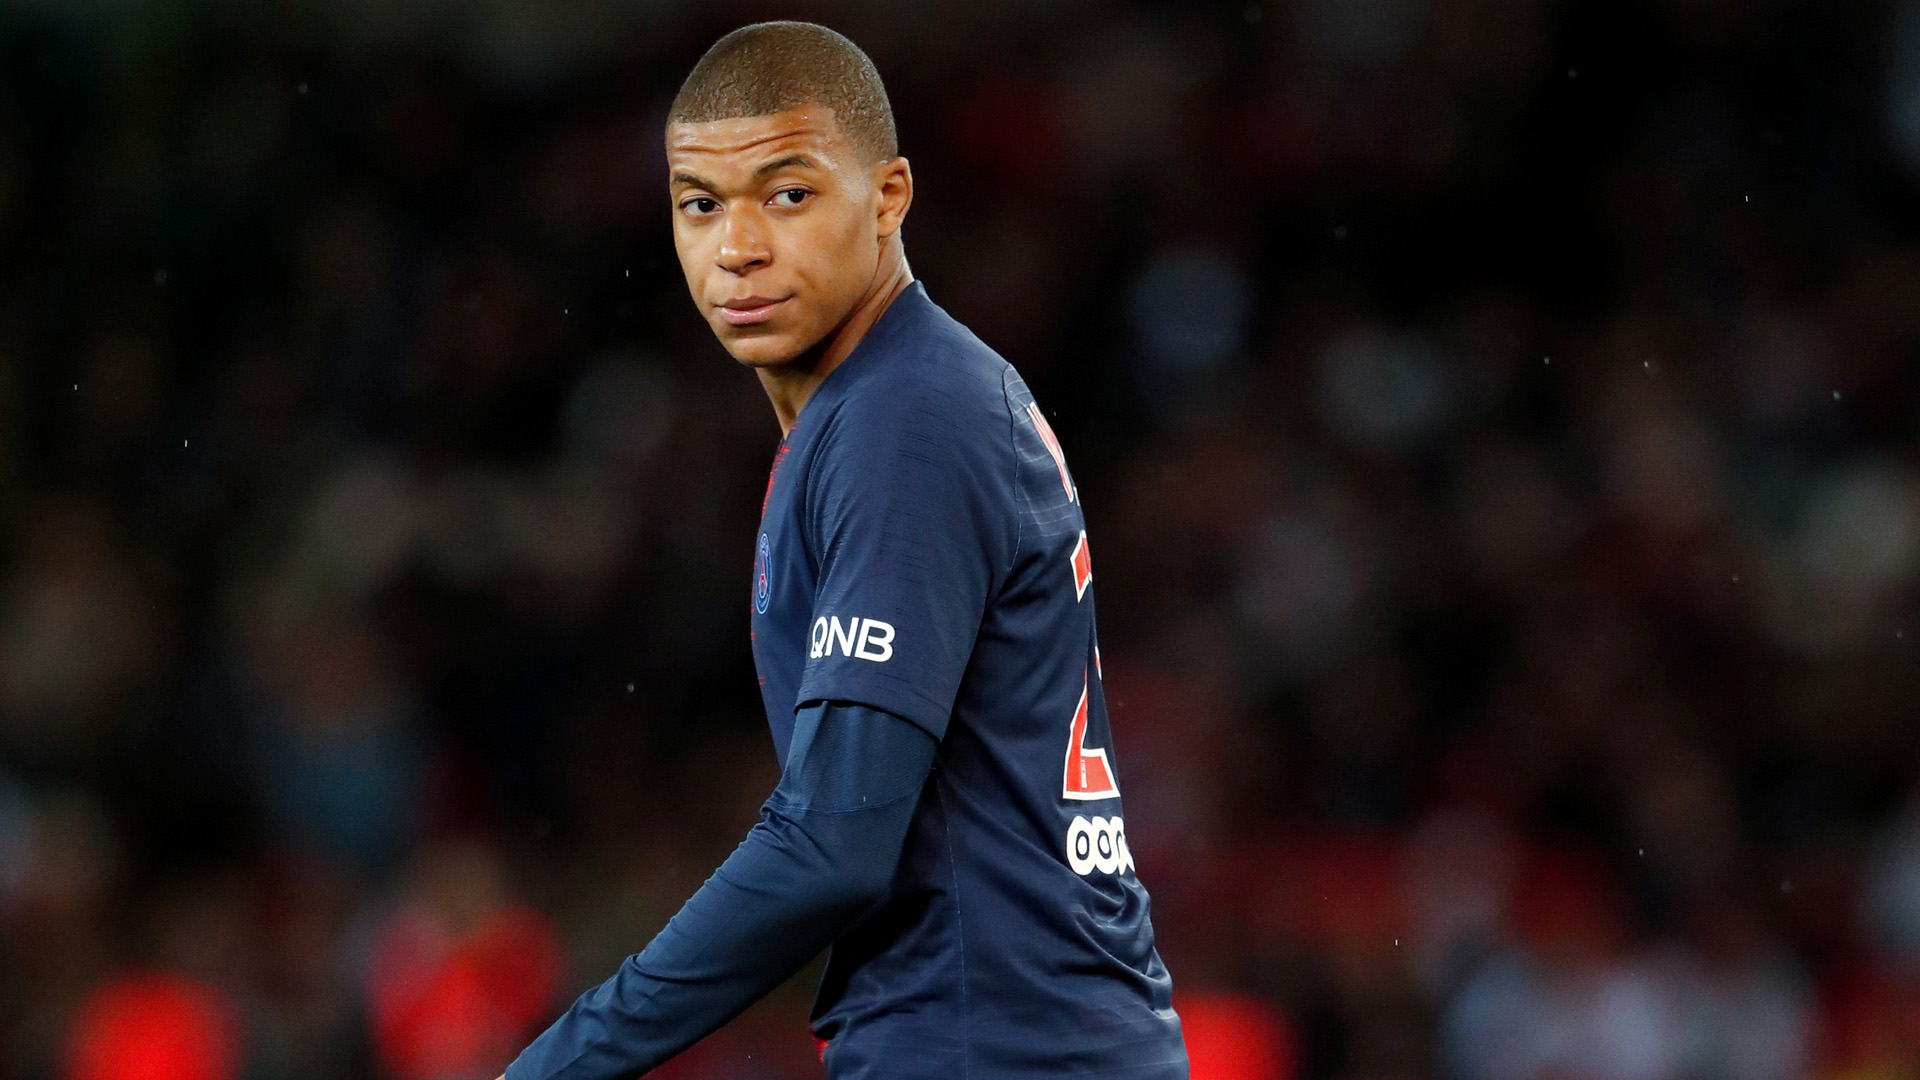 Kylian Mbappe Paris Saint-Germain 12052018